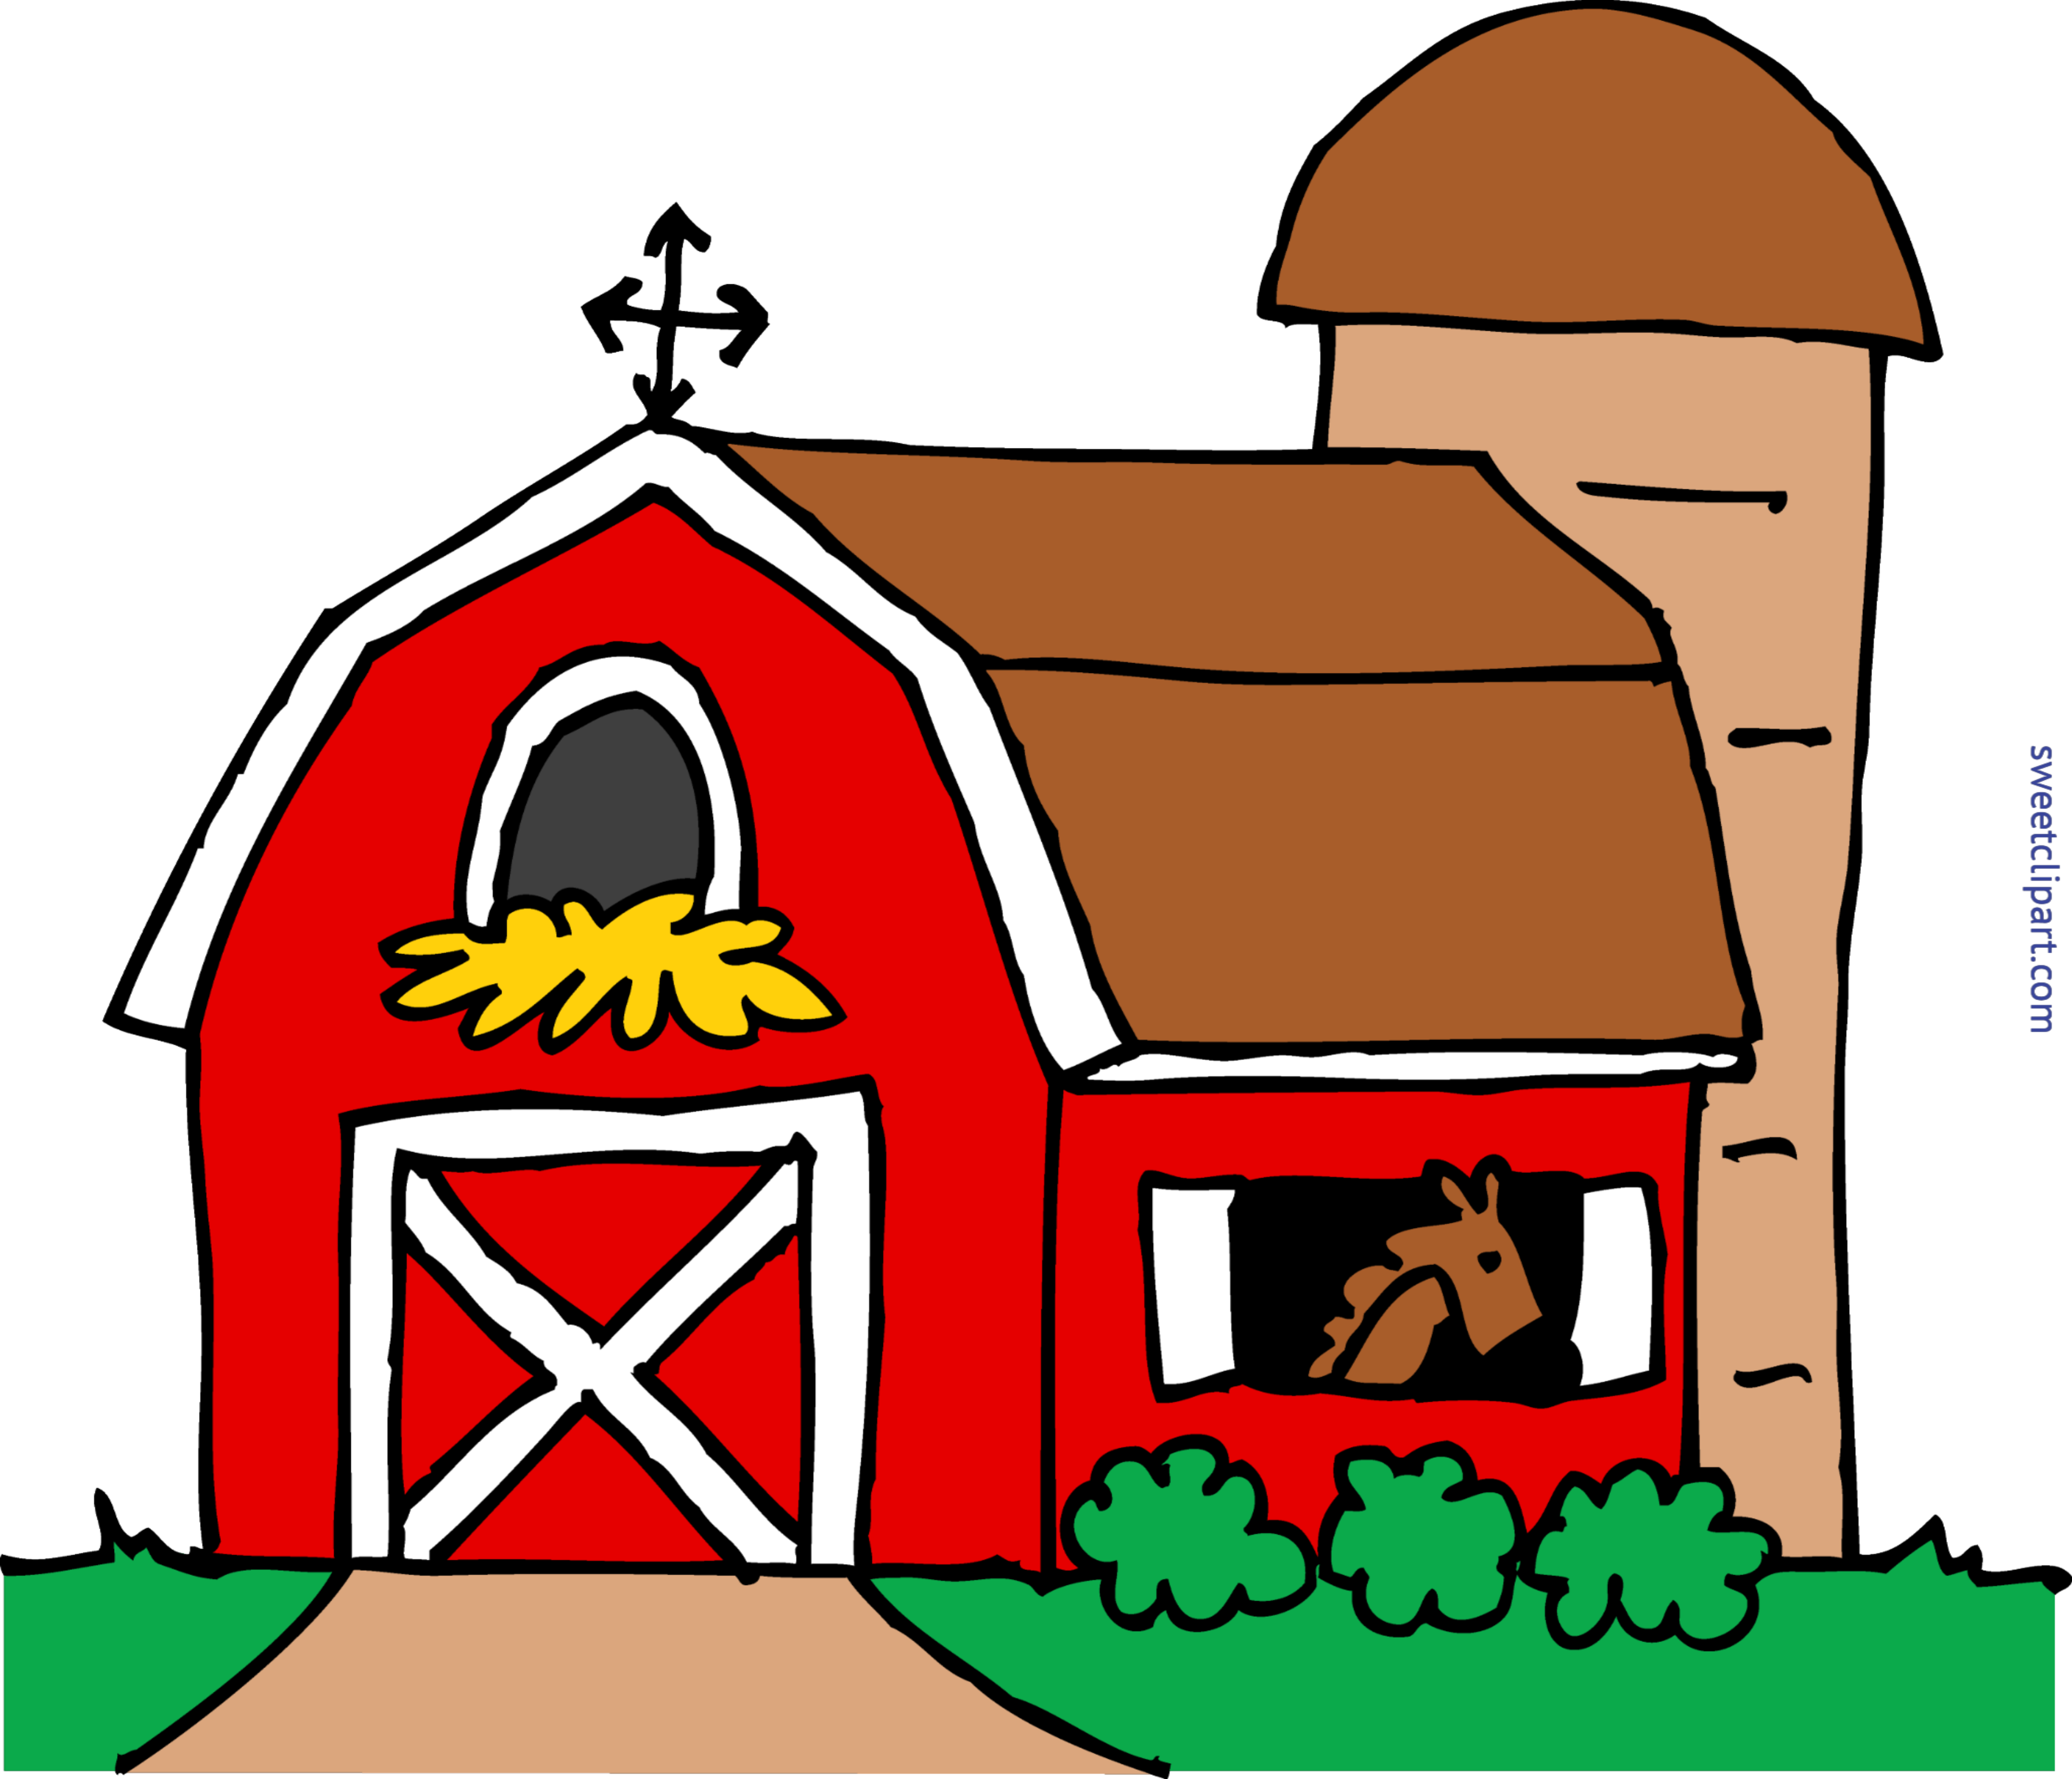 Finance clipart property. Cute barn png transparent